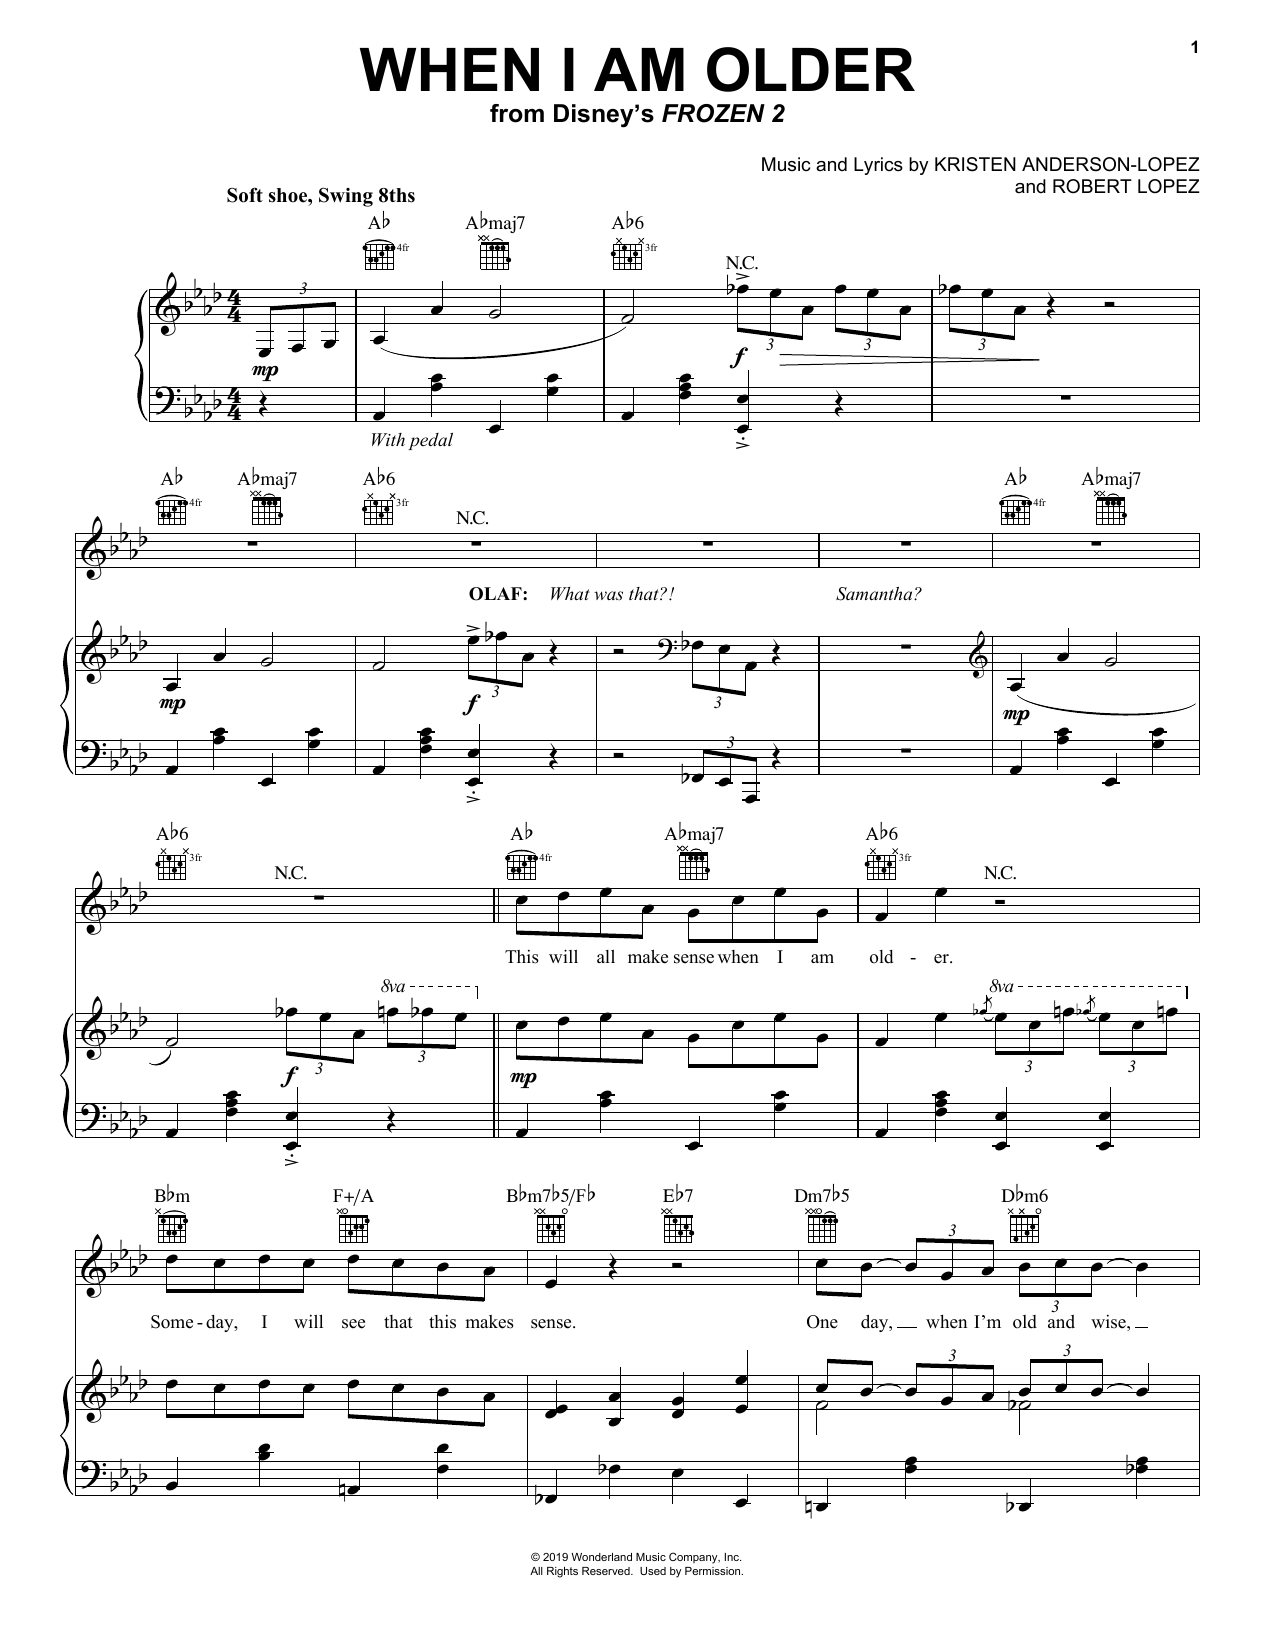 It's just an image of Free Printable Disney Sheet Music inside advanced recorder